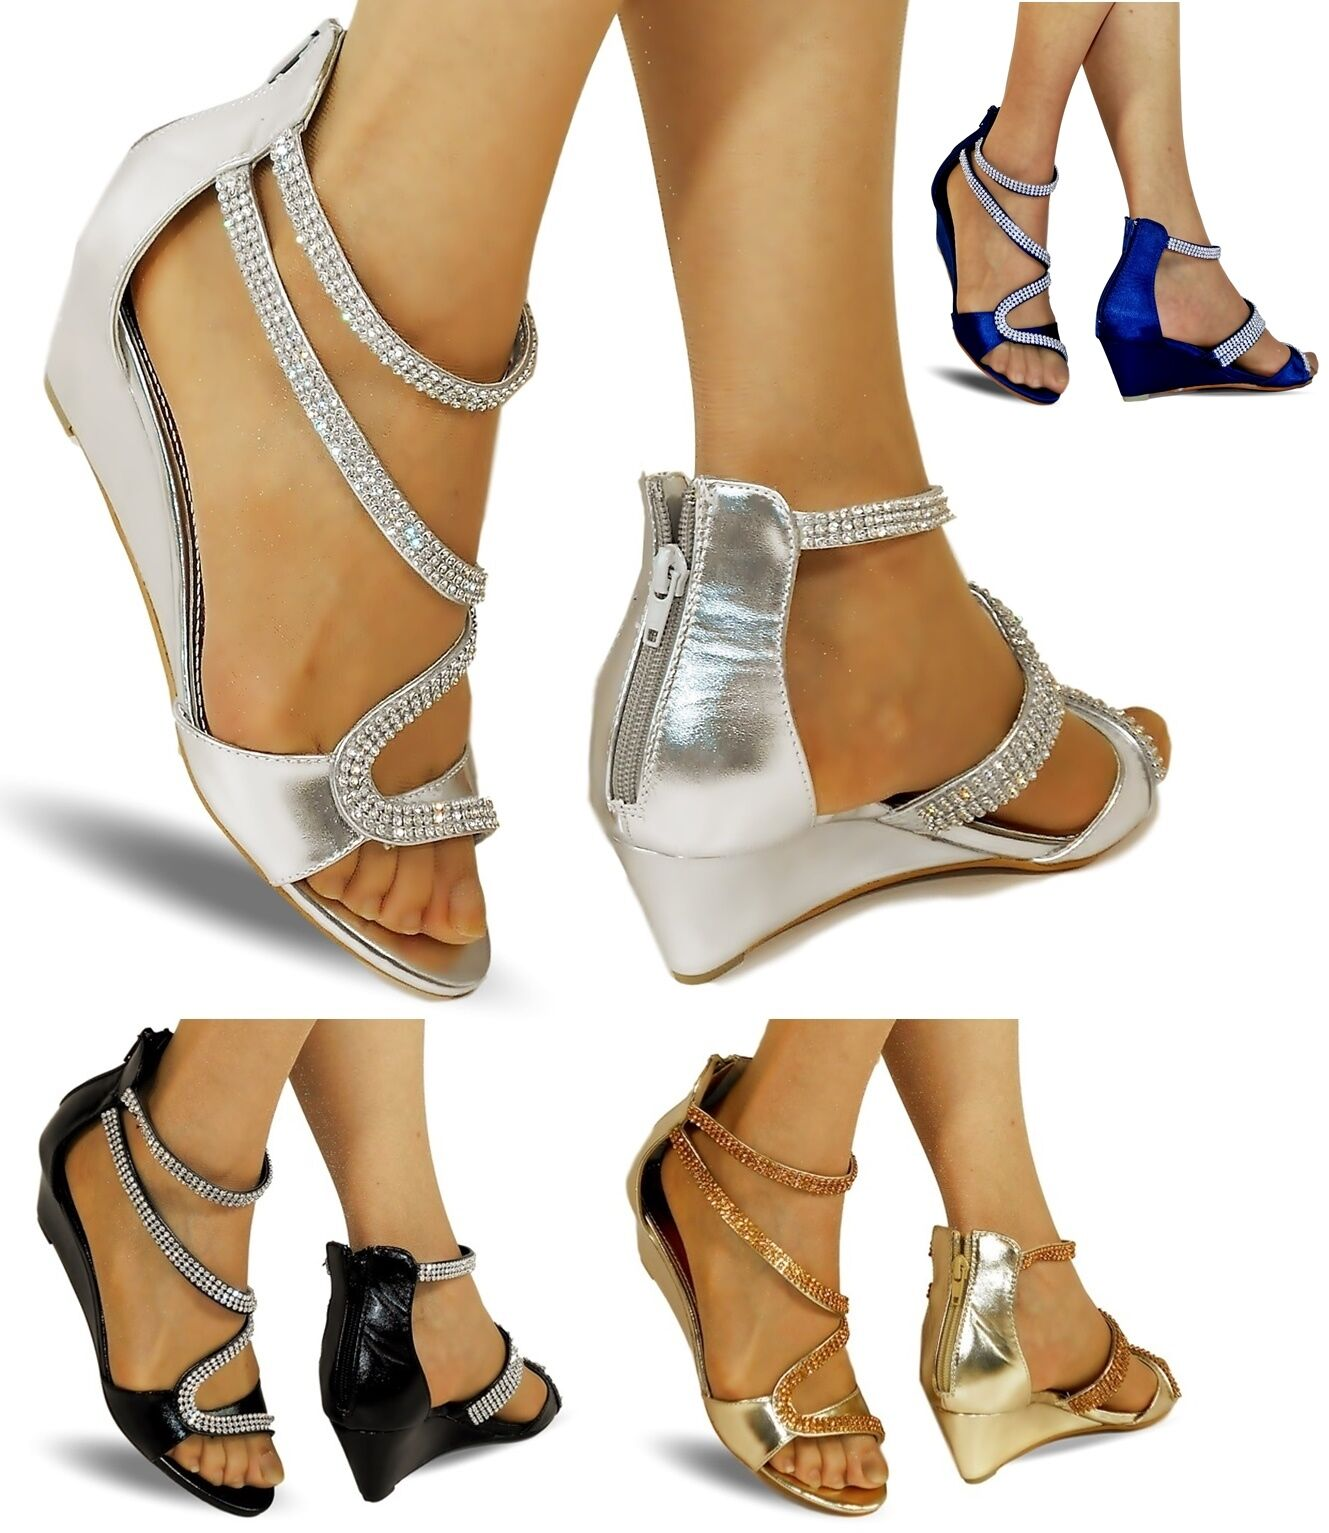 NEW Ladies Party Shoes Diamante Ankle Straps Low Wedge Heel Shoes Party Sandal Size-K331 749495